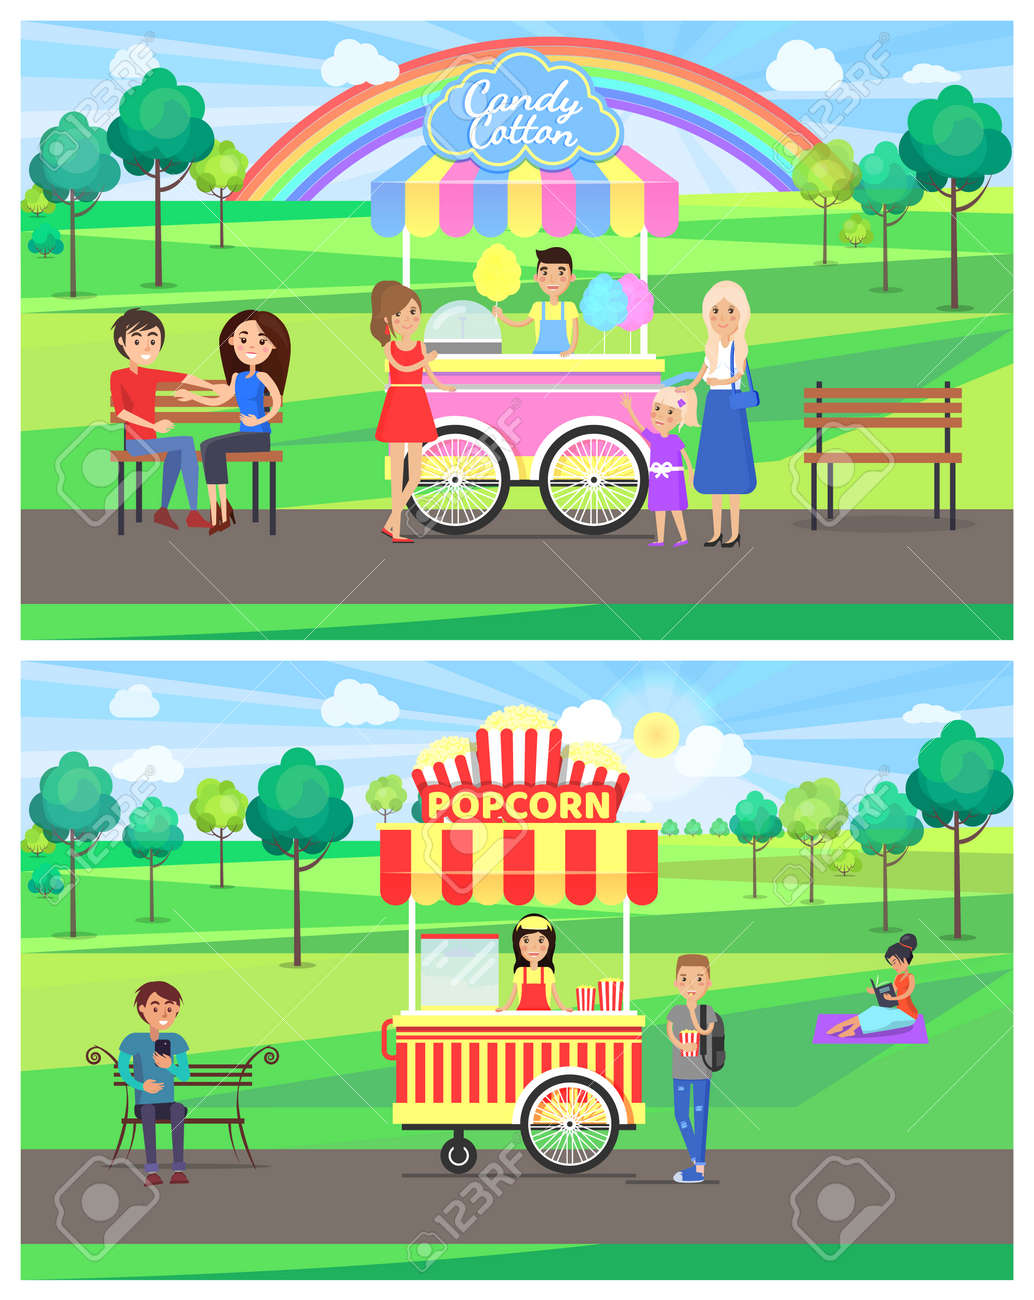 Popcorn and candy cotton stands in park, rainbow happy people,